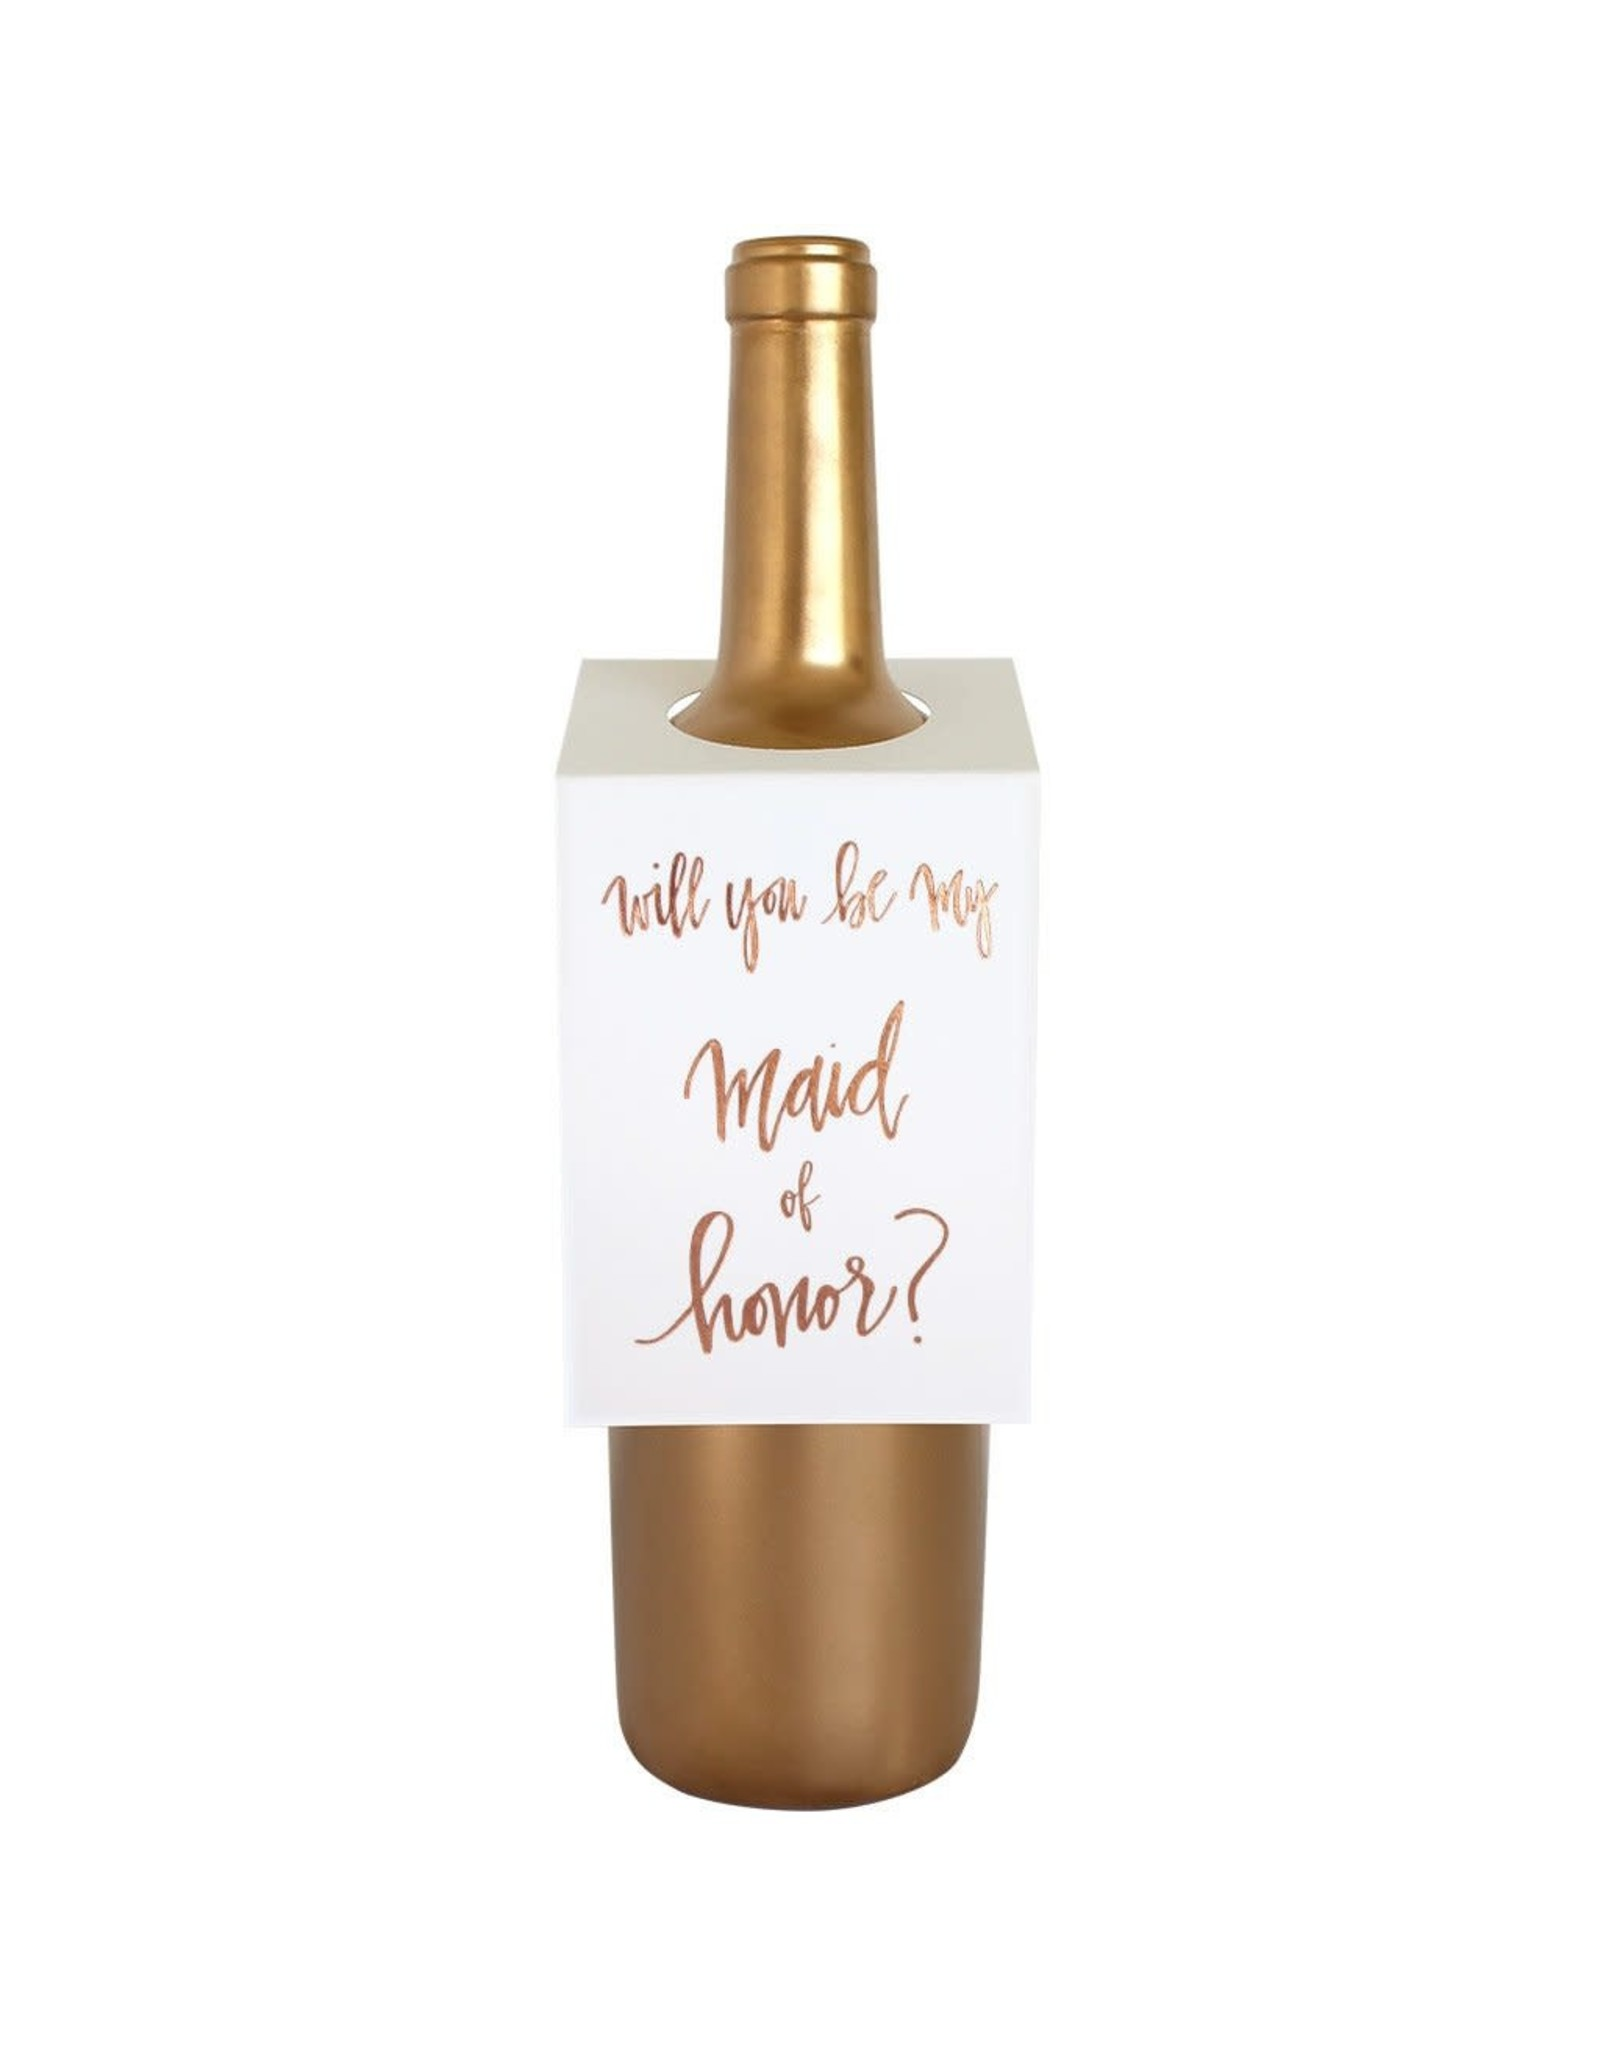 Chez Gagne Will You Be My Maid of Honor - Wine & Spirit Tag